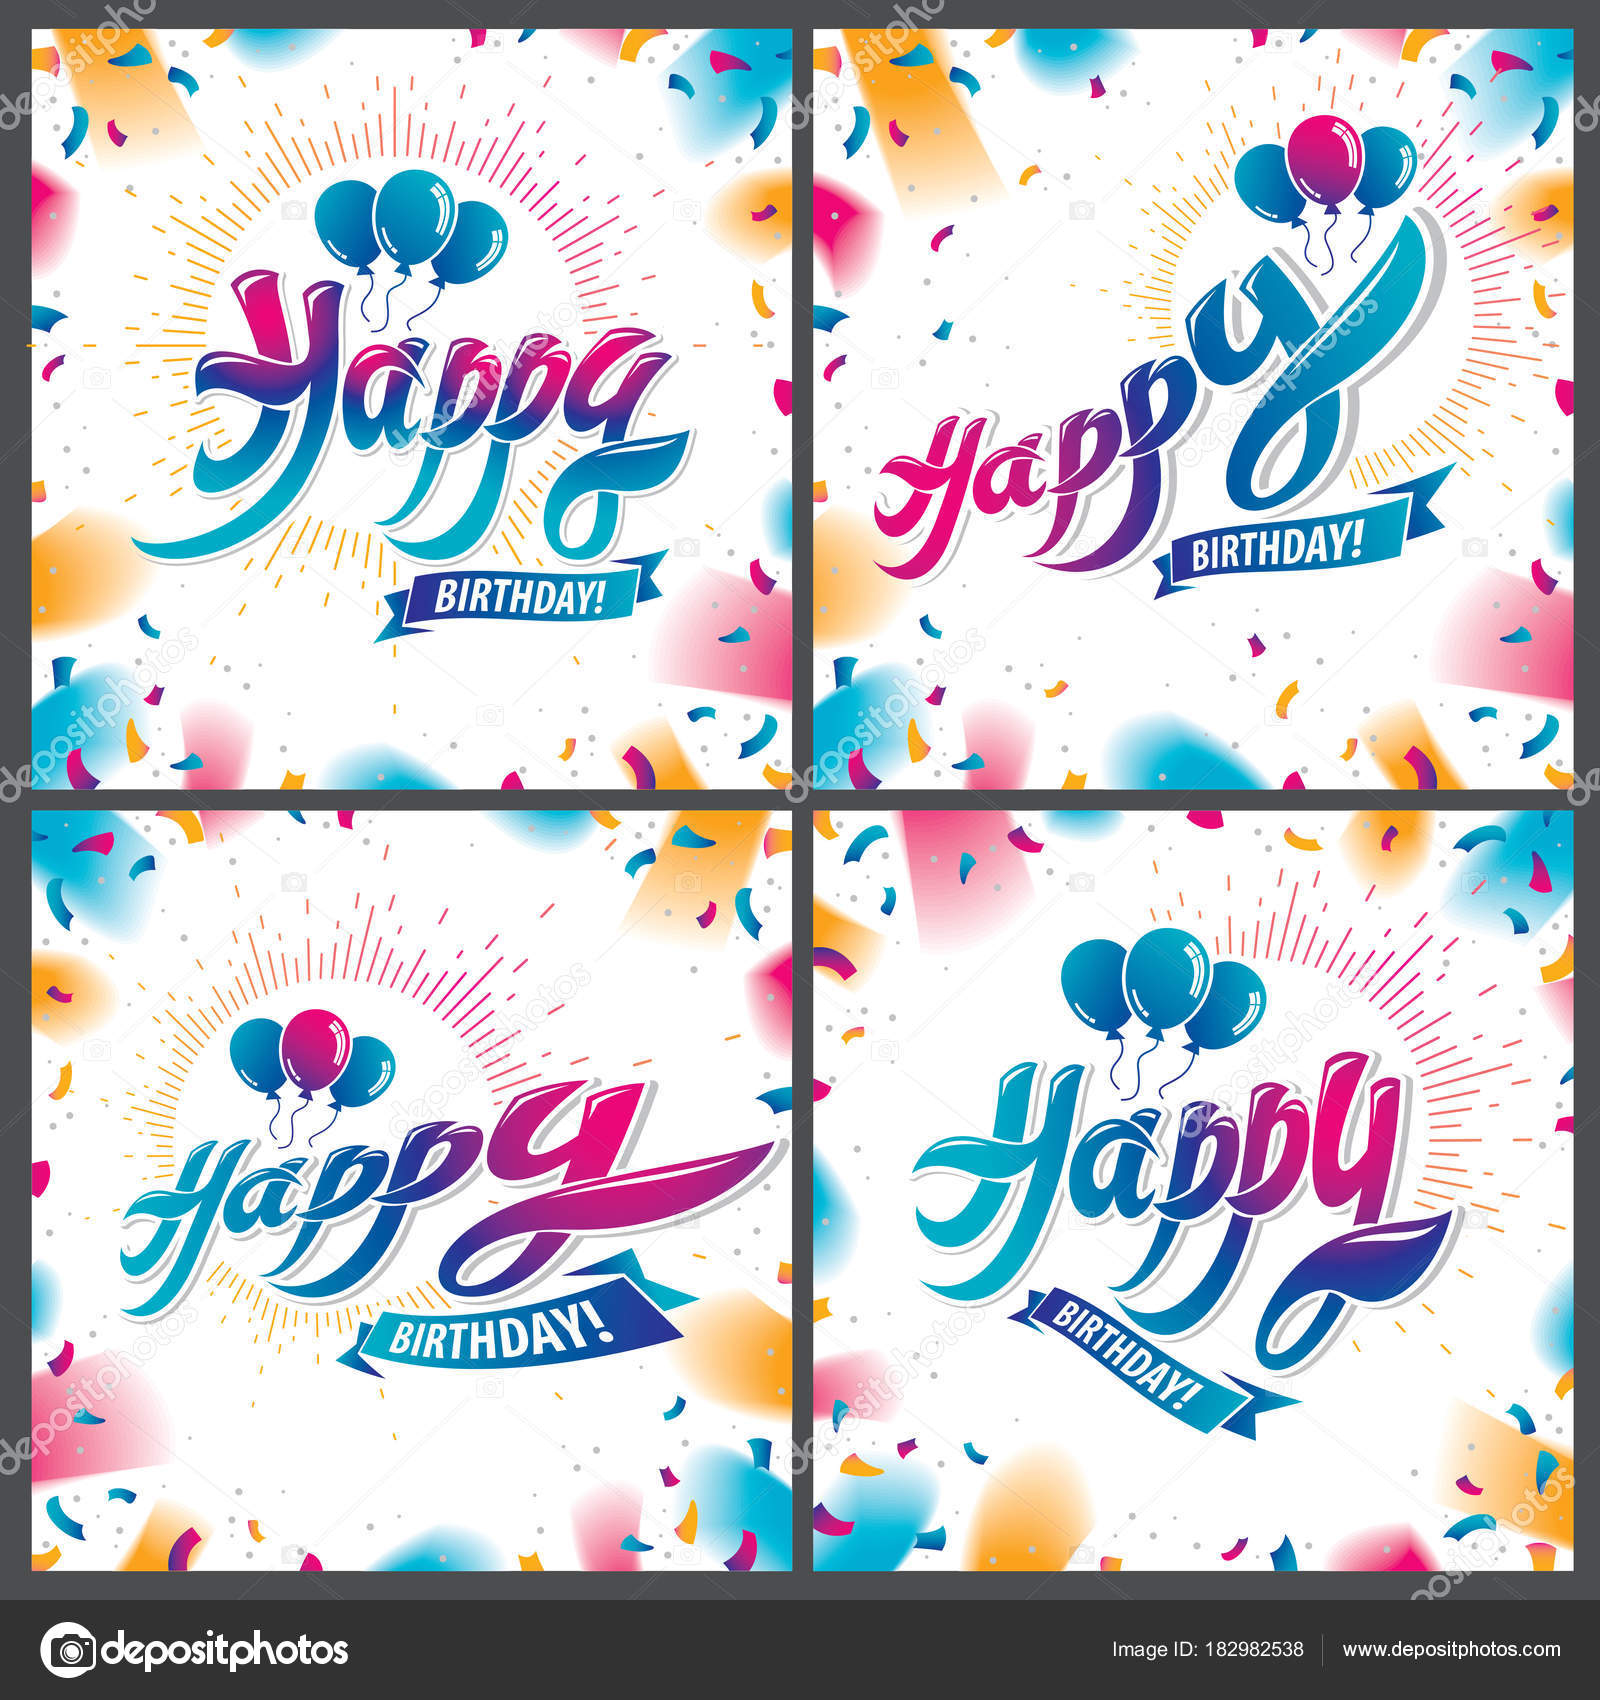 Happy Birthday Beautiful Greeting Cards Vector Designs Set Includes